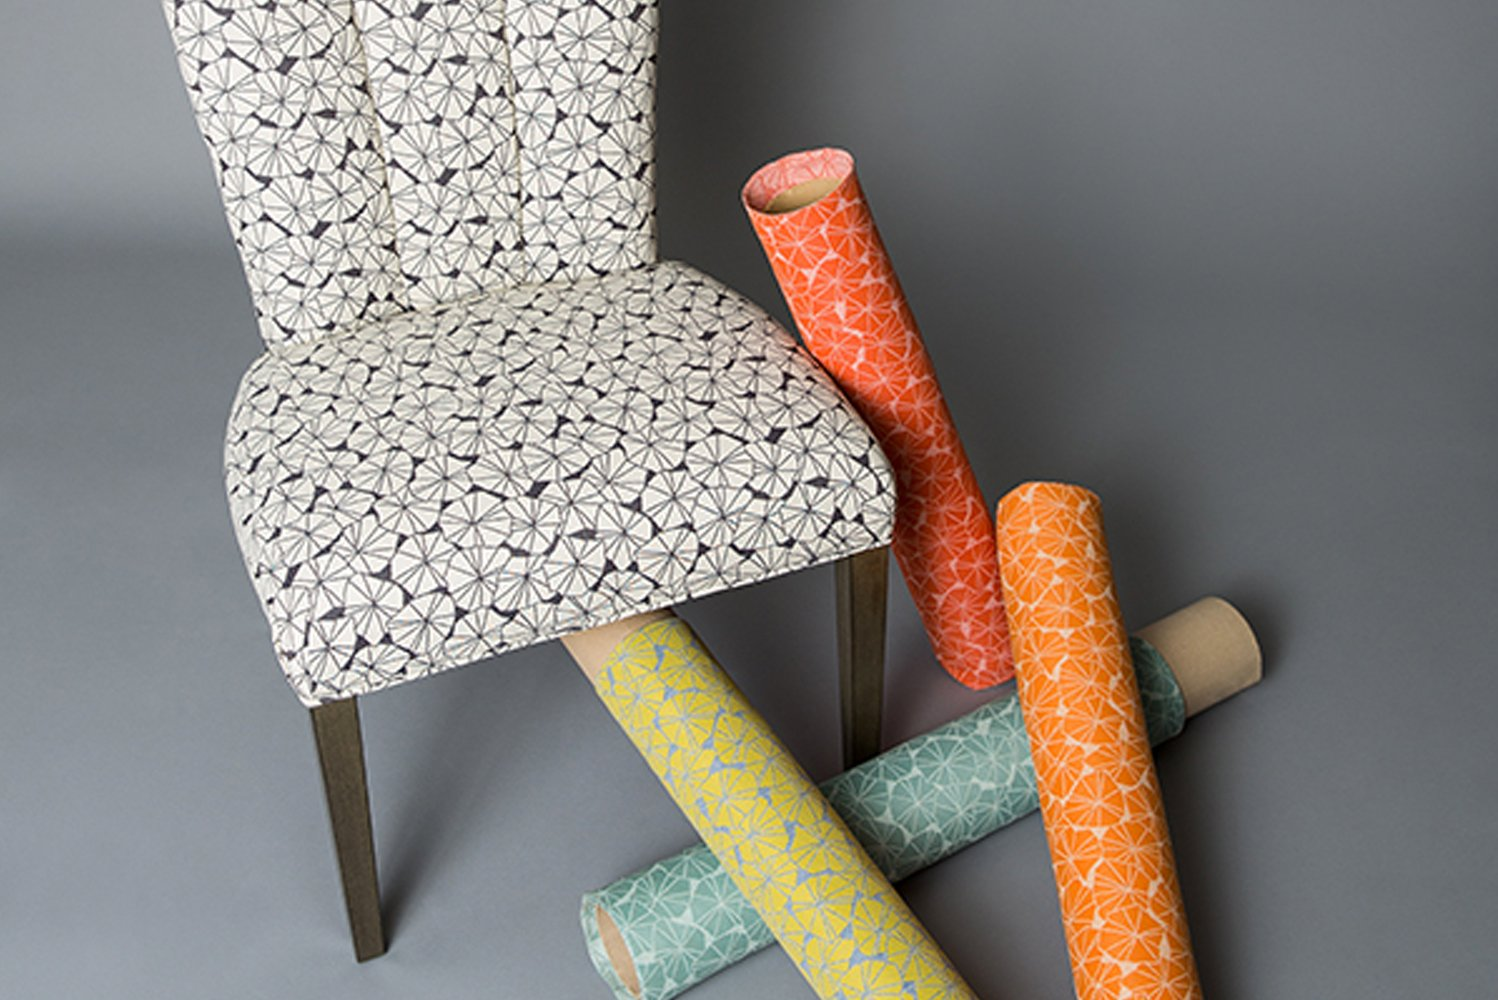 Introducing the Clearwater collection from Brentano.